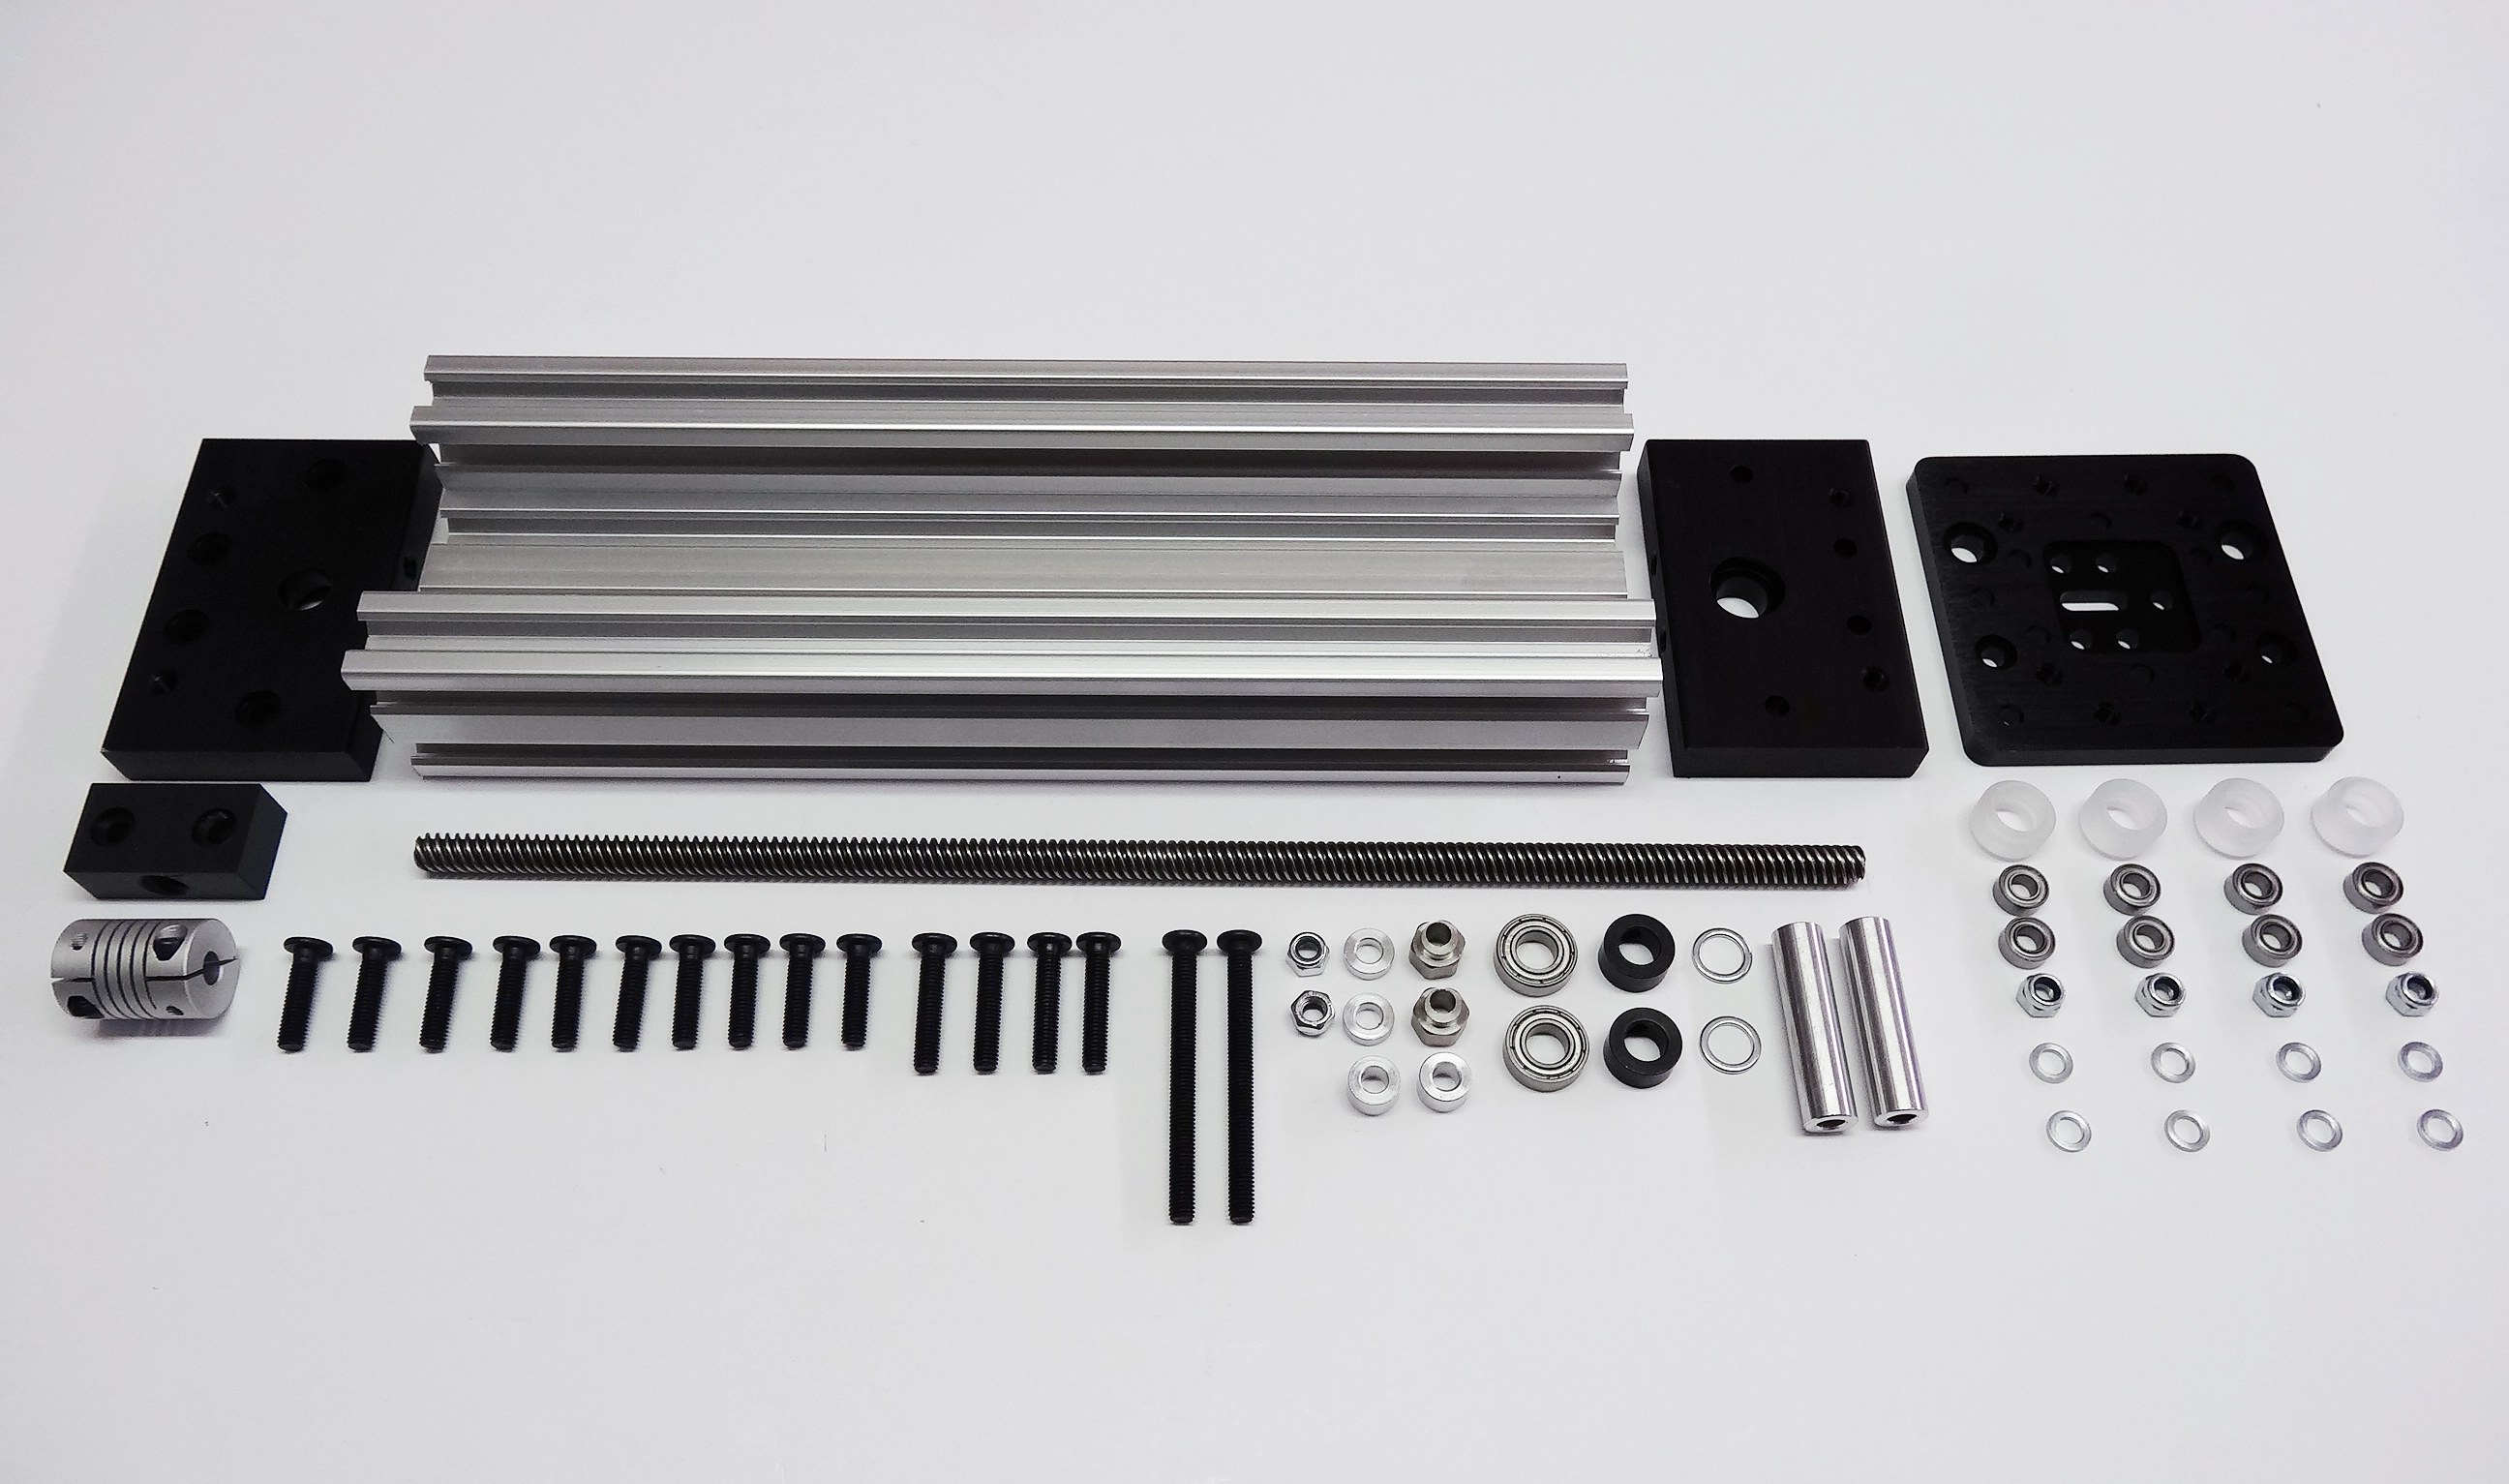 C beam linear actuator bundle openbuilds for Low profile stepper motor